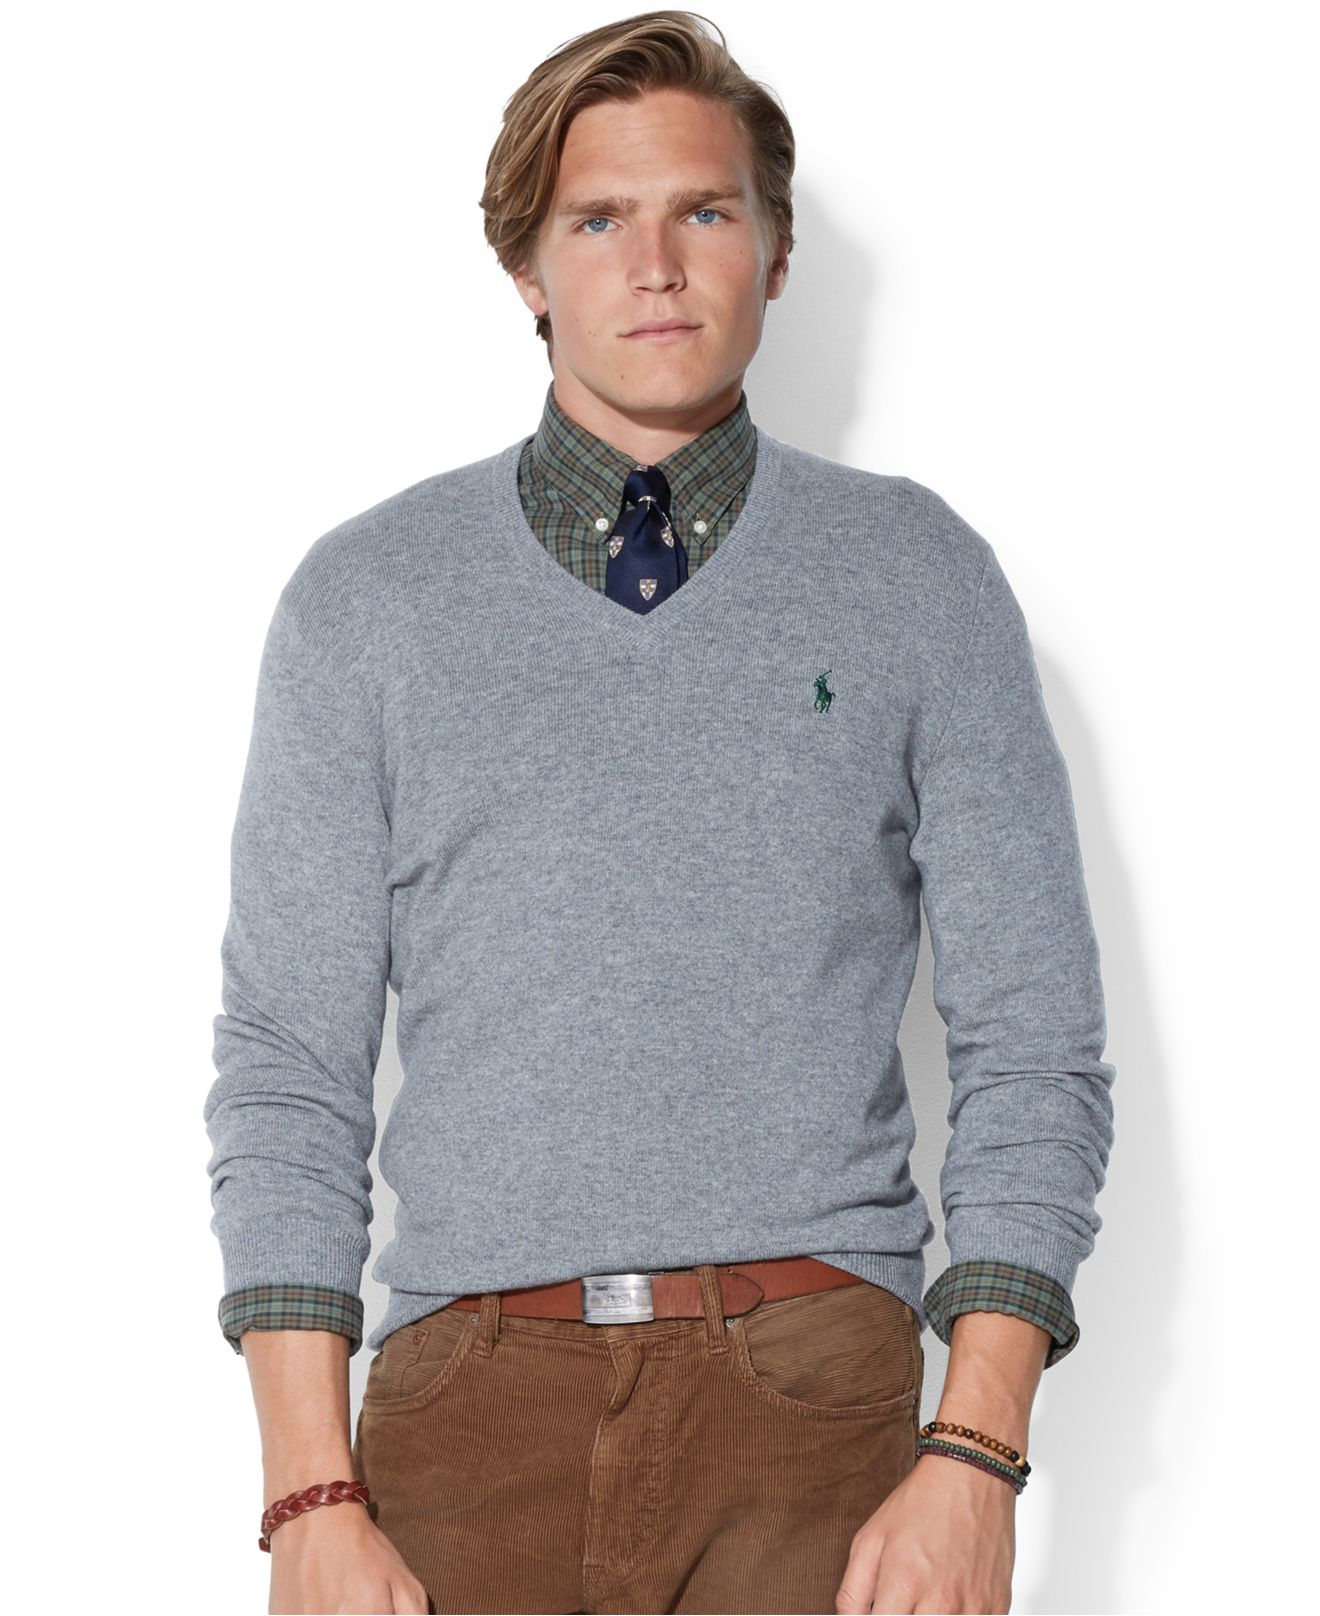 ee58ae56f72 ... wholesale lyst polo ralph lauren loryelle merino wool v neck sweater in  gray 38791 a6192